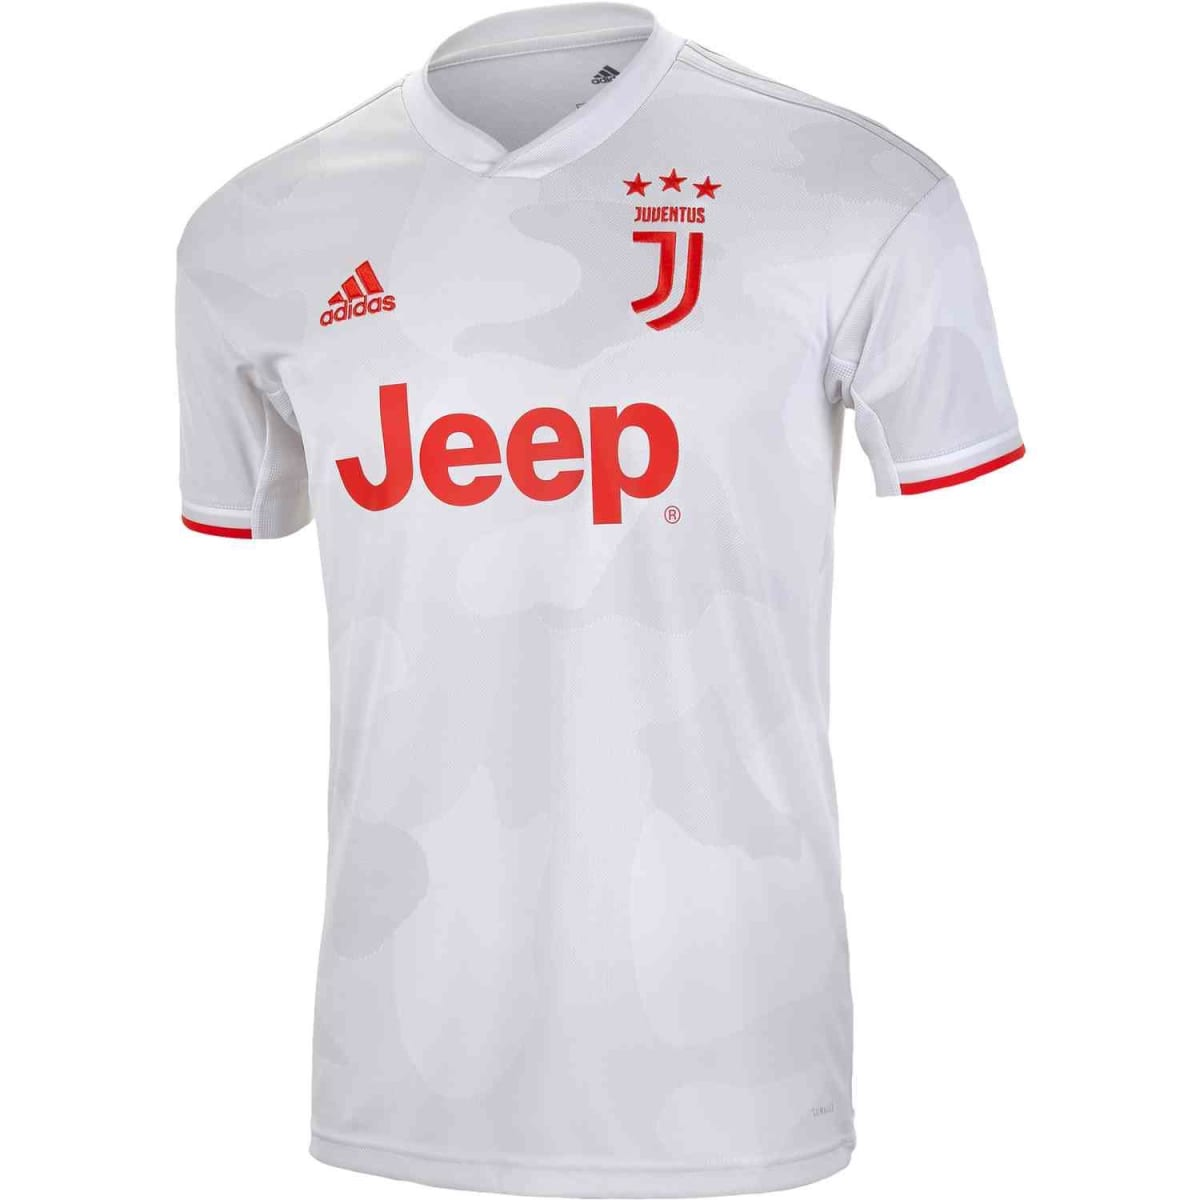 check out fc987 254d8 Football | Senior Jerseys | Sportsmans Warehouse